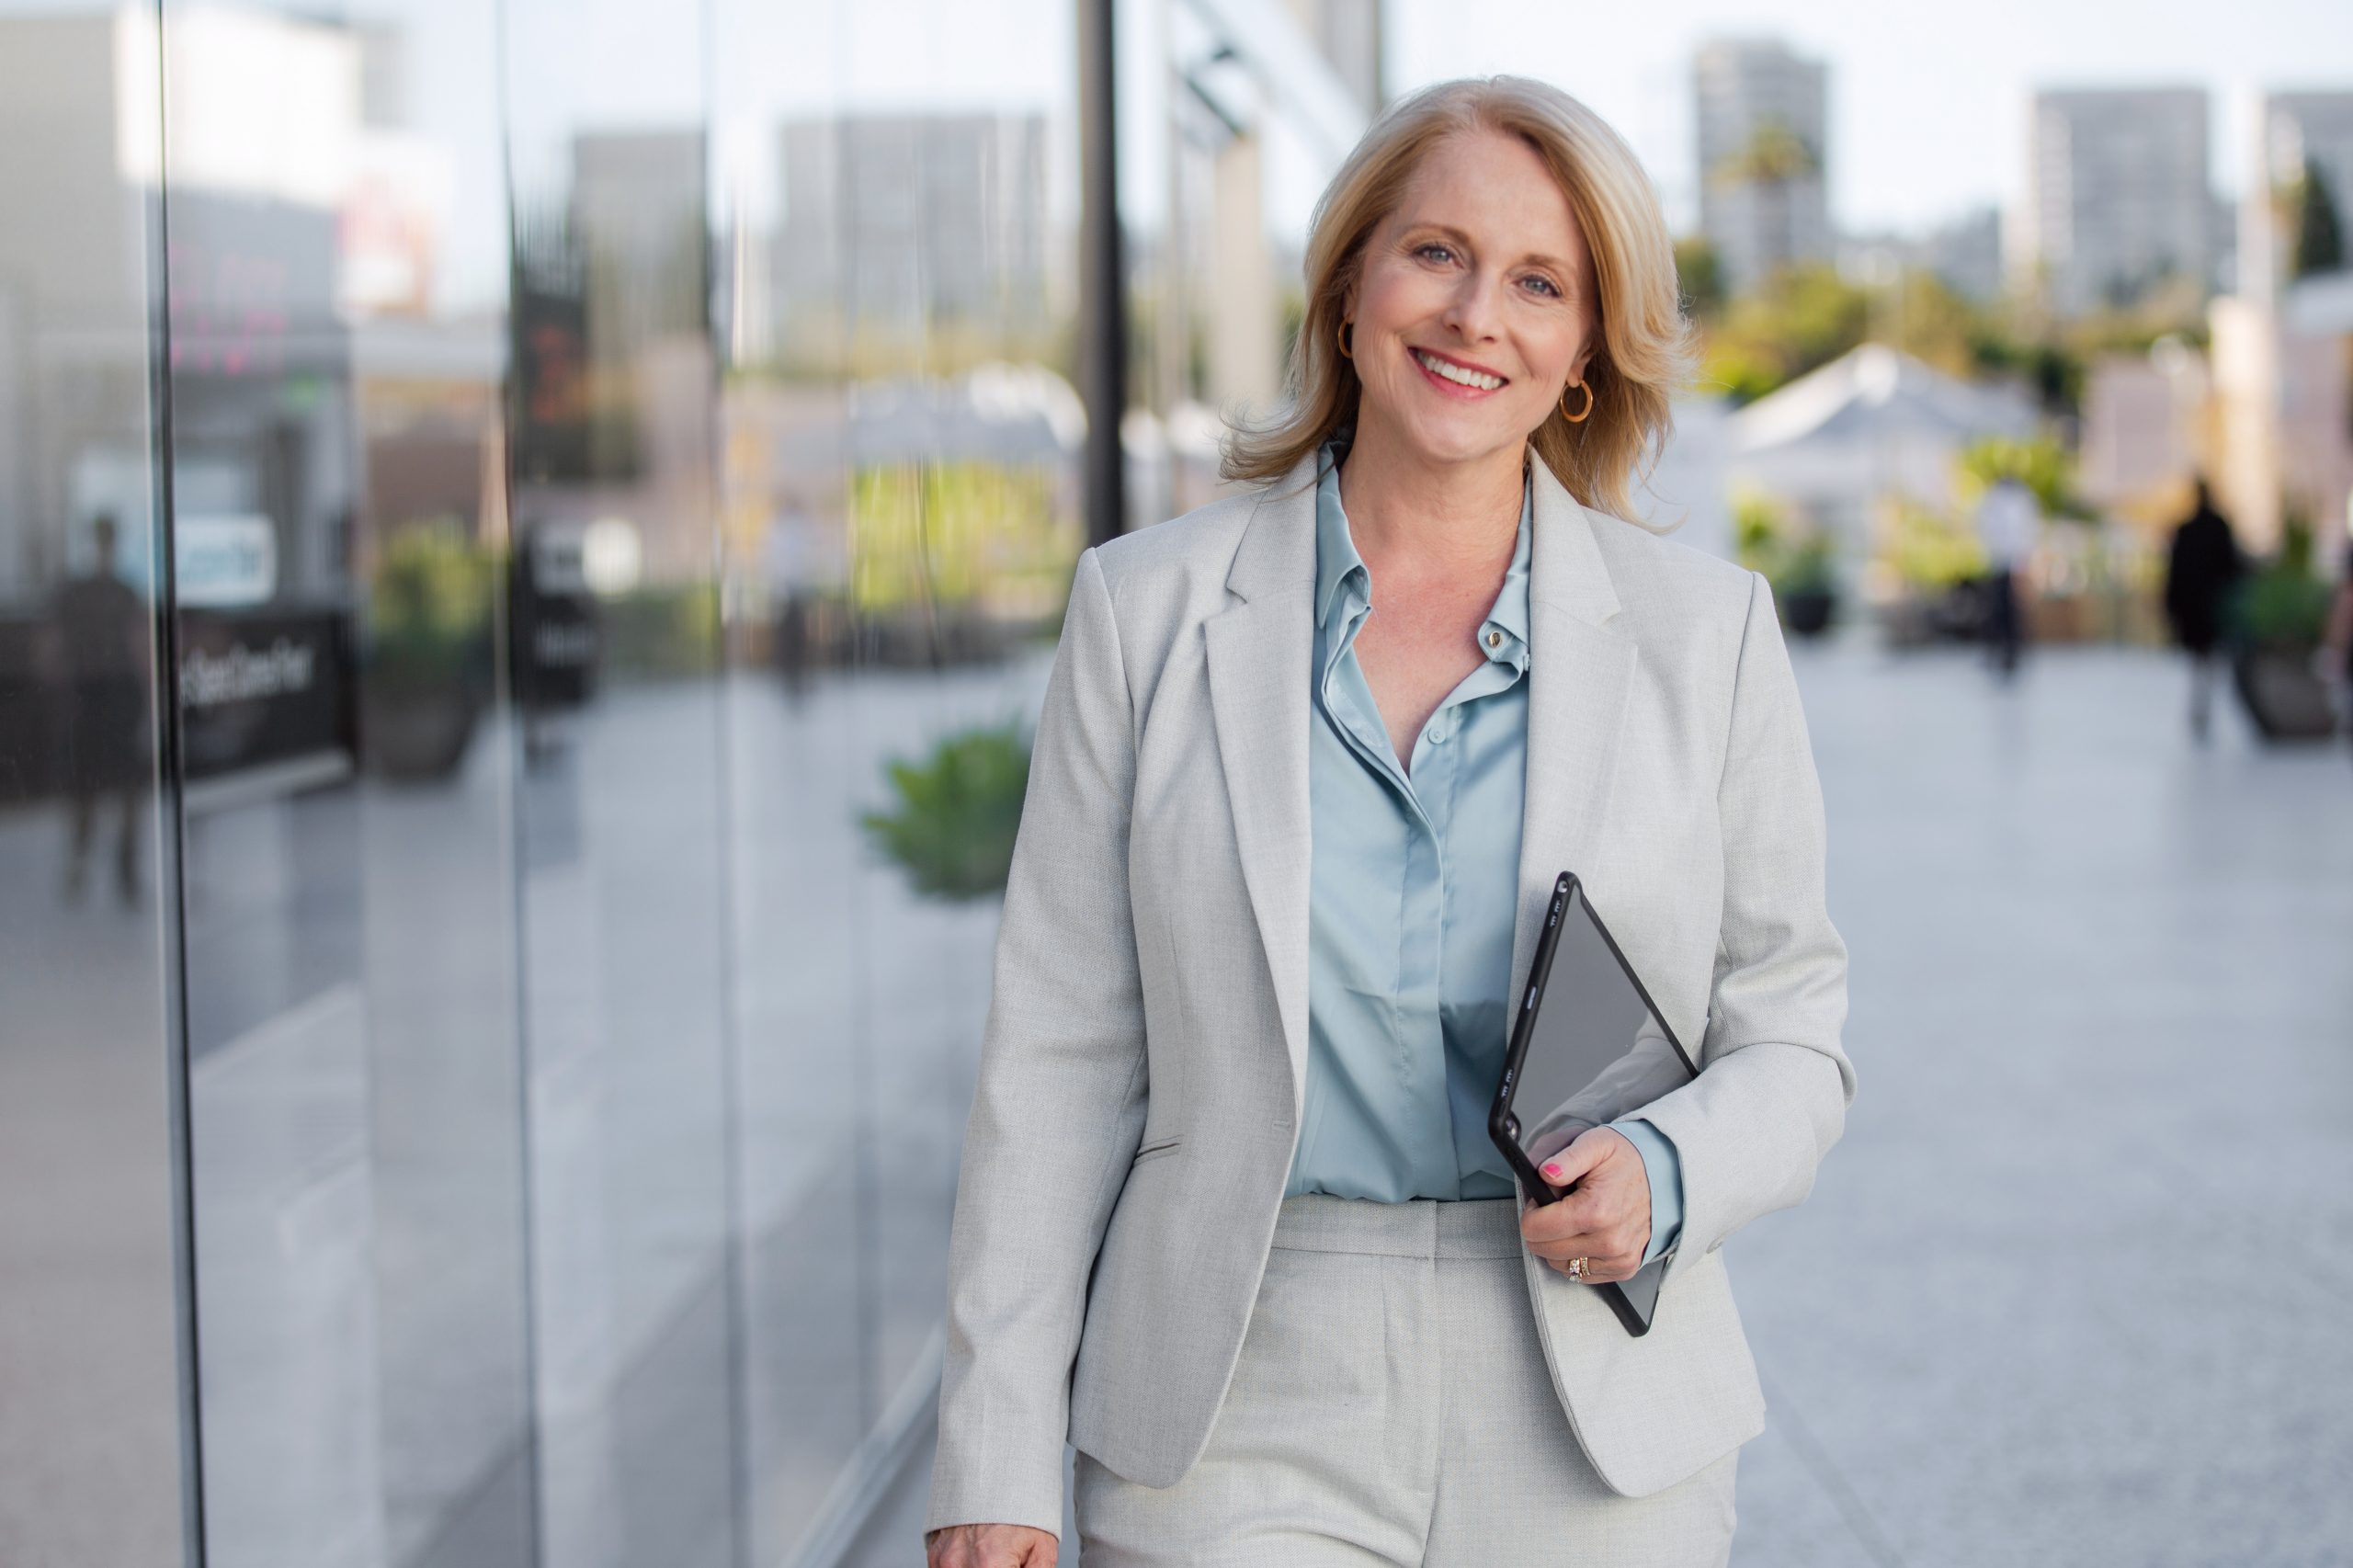 CEO business corporate executive, walking confident, cheerful, positive, bright and smiling to office in financial district